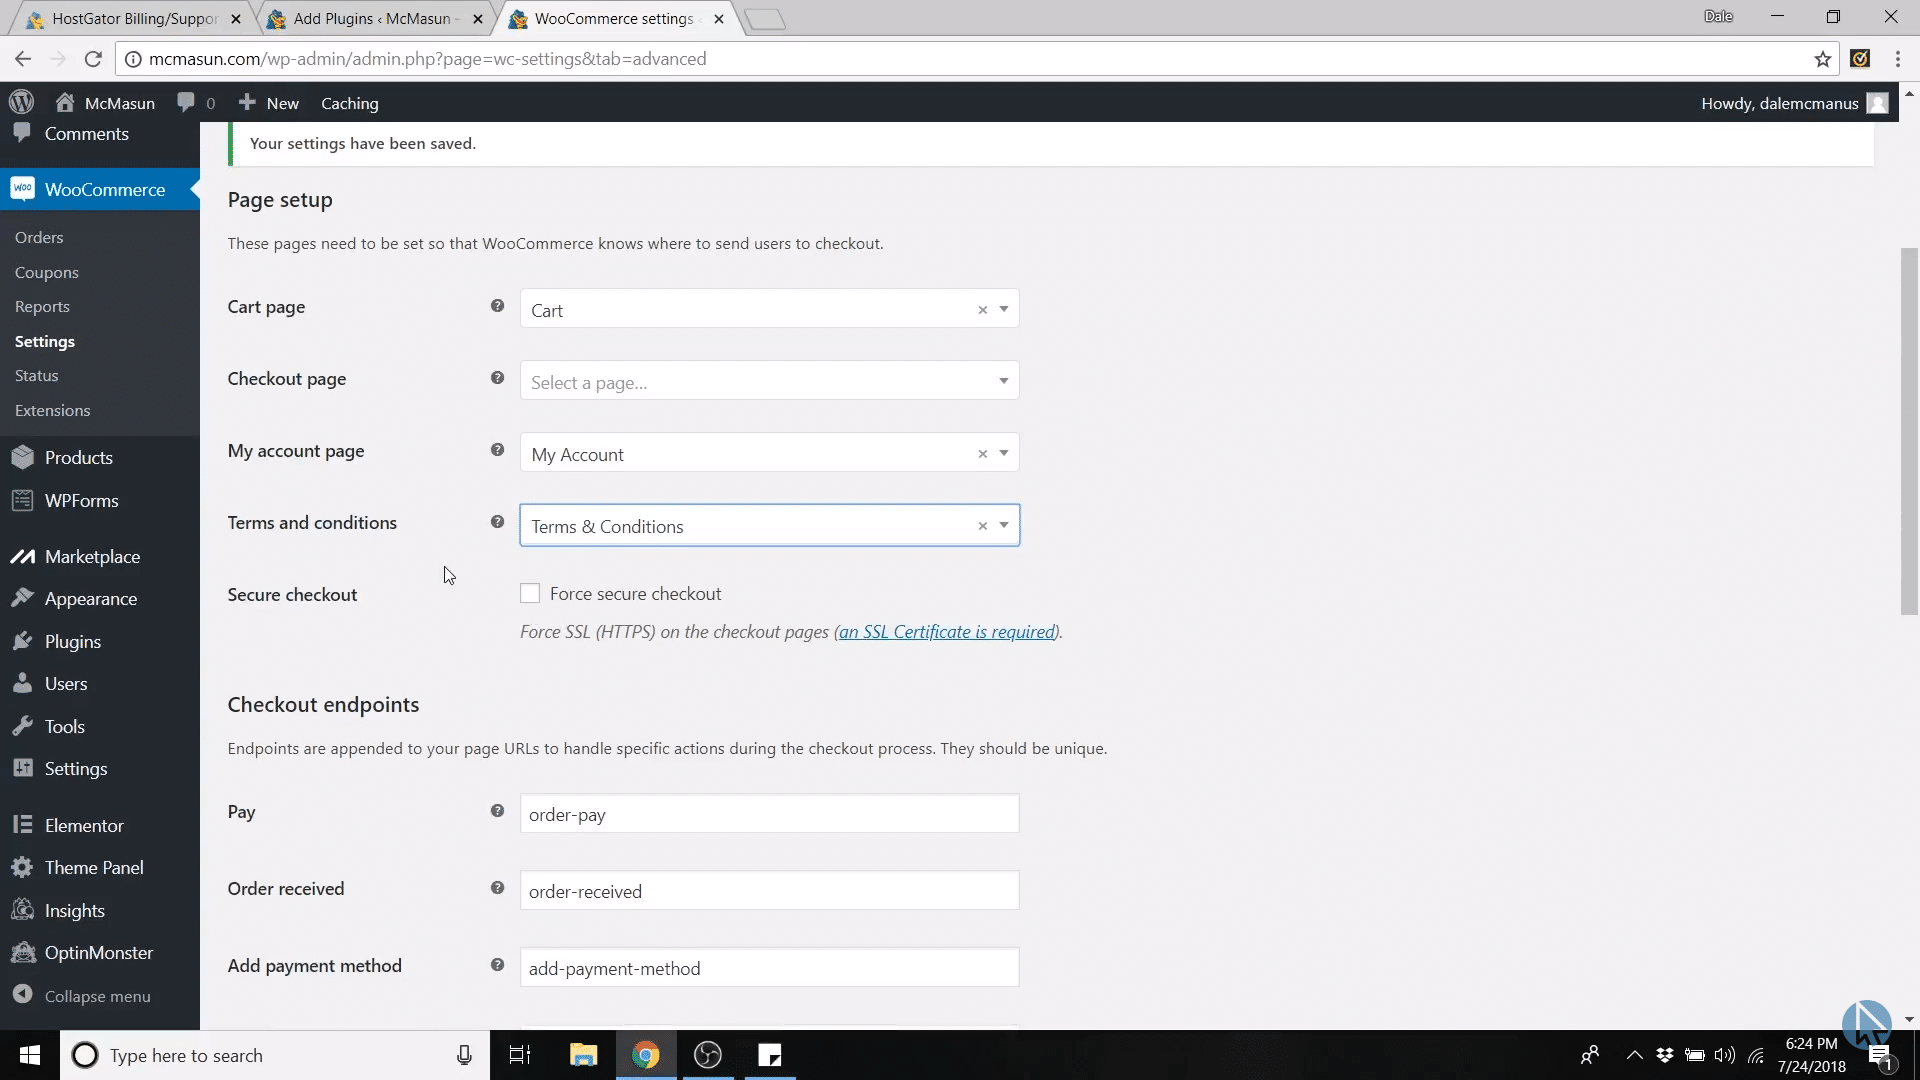 secure checkout unchecked